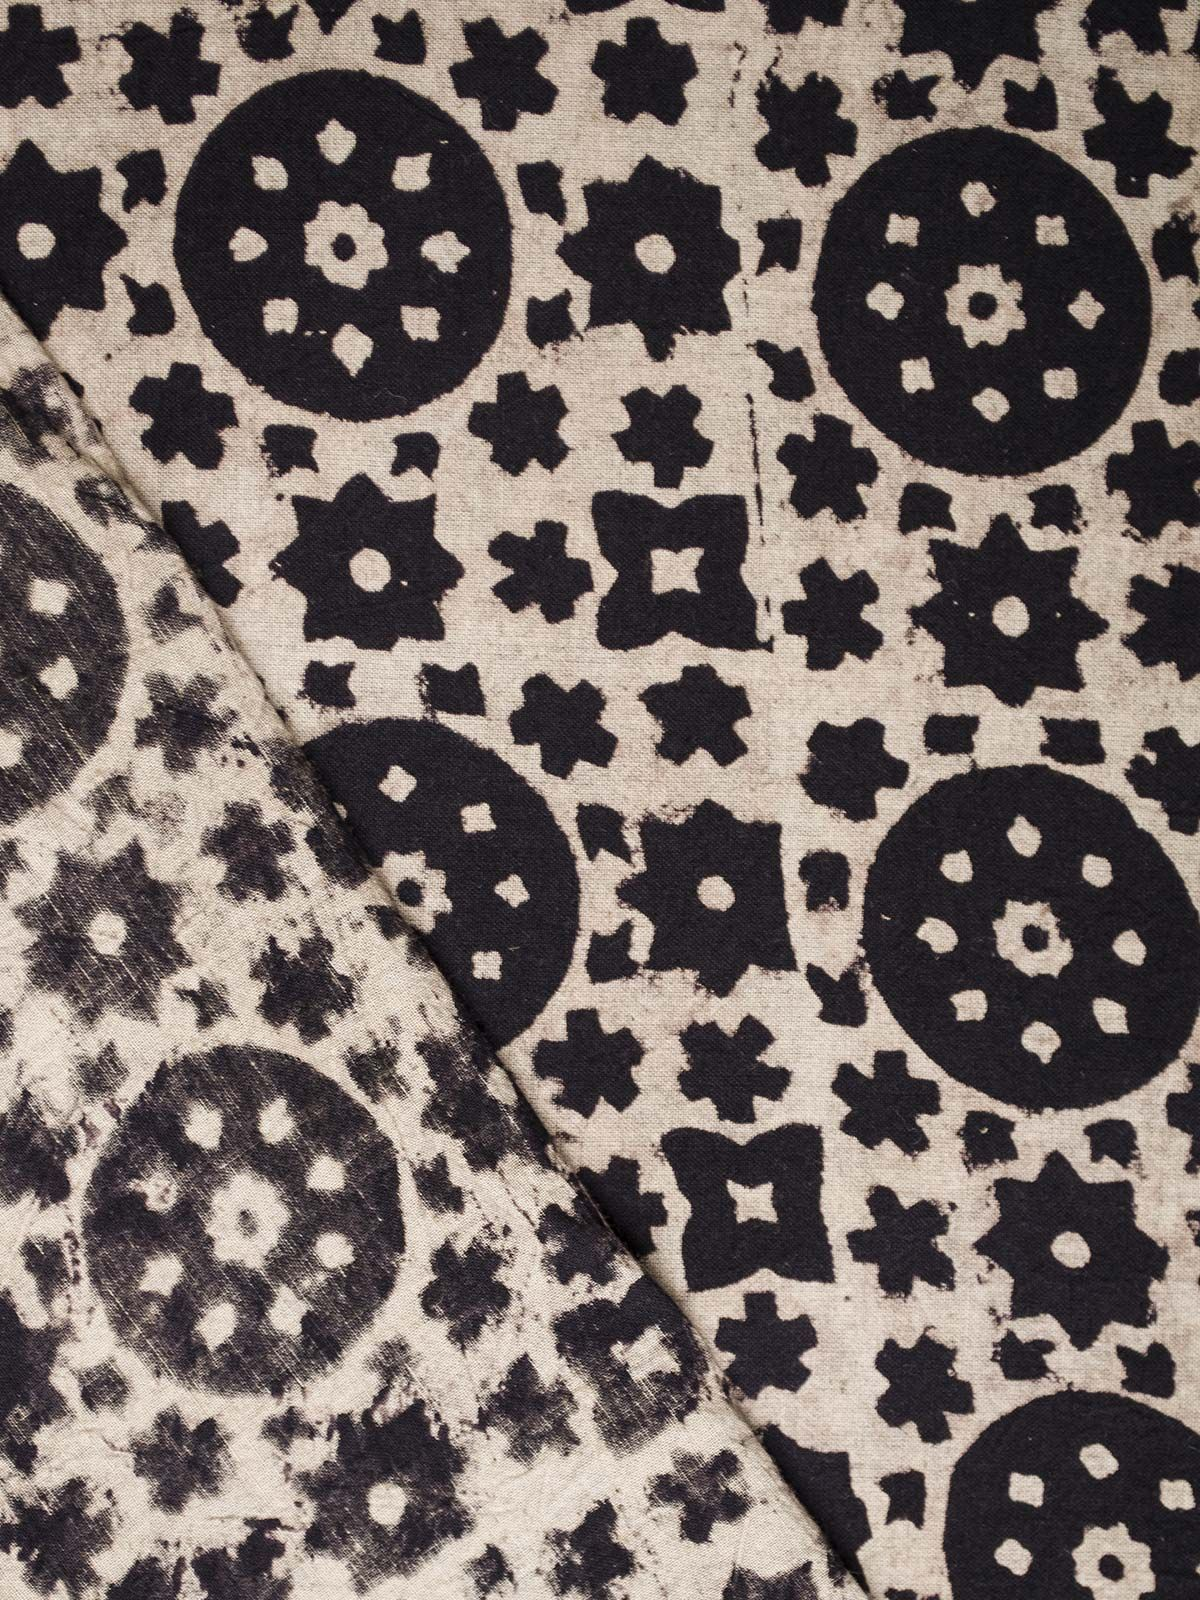 Black and White Ajrak Block Print Cotton Fabric